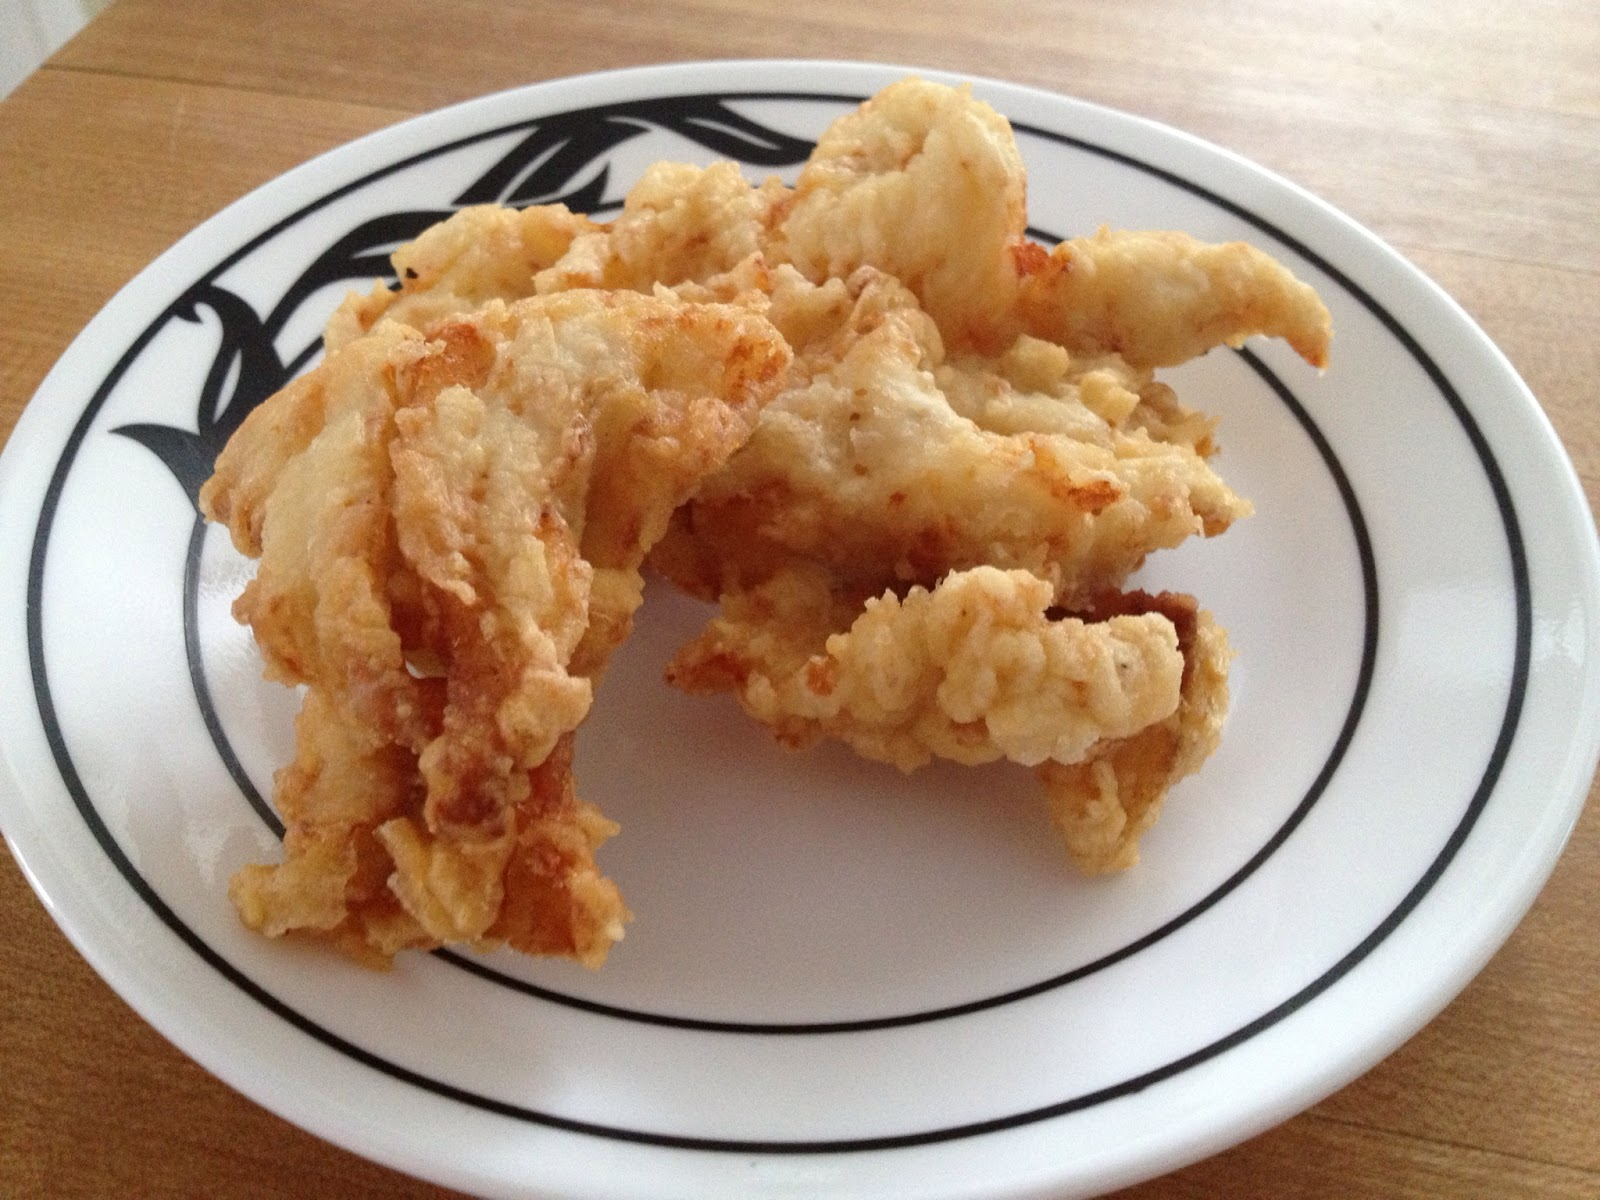 Little oak creations deep fried pike for Deep fry fish batter